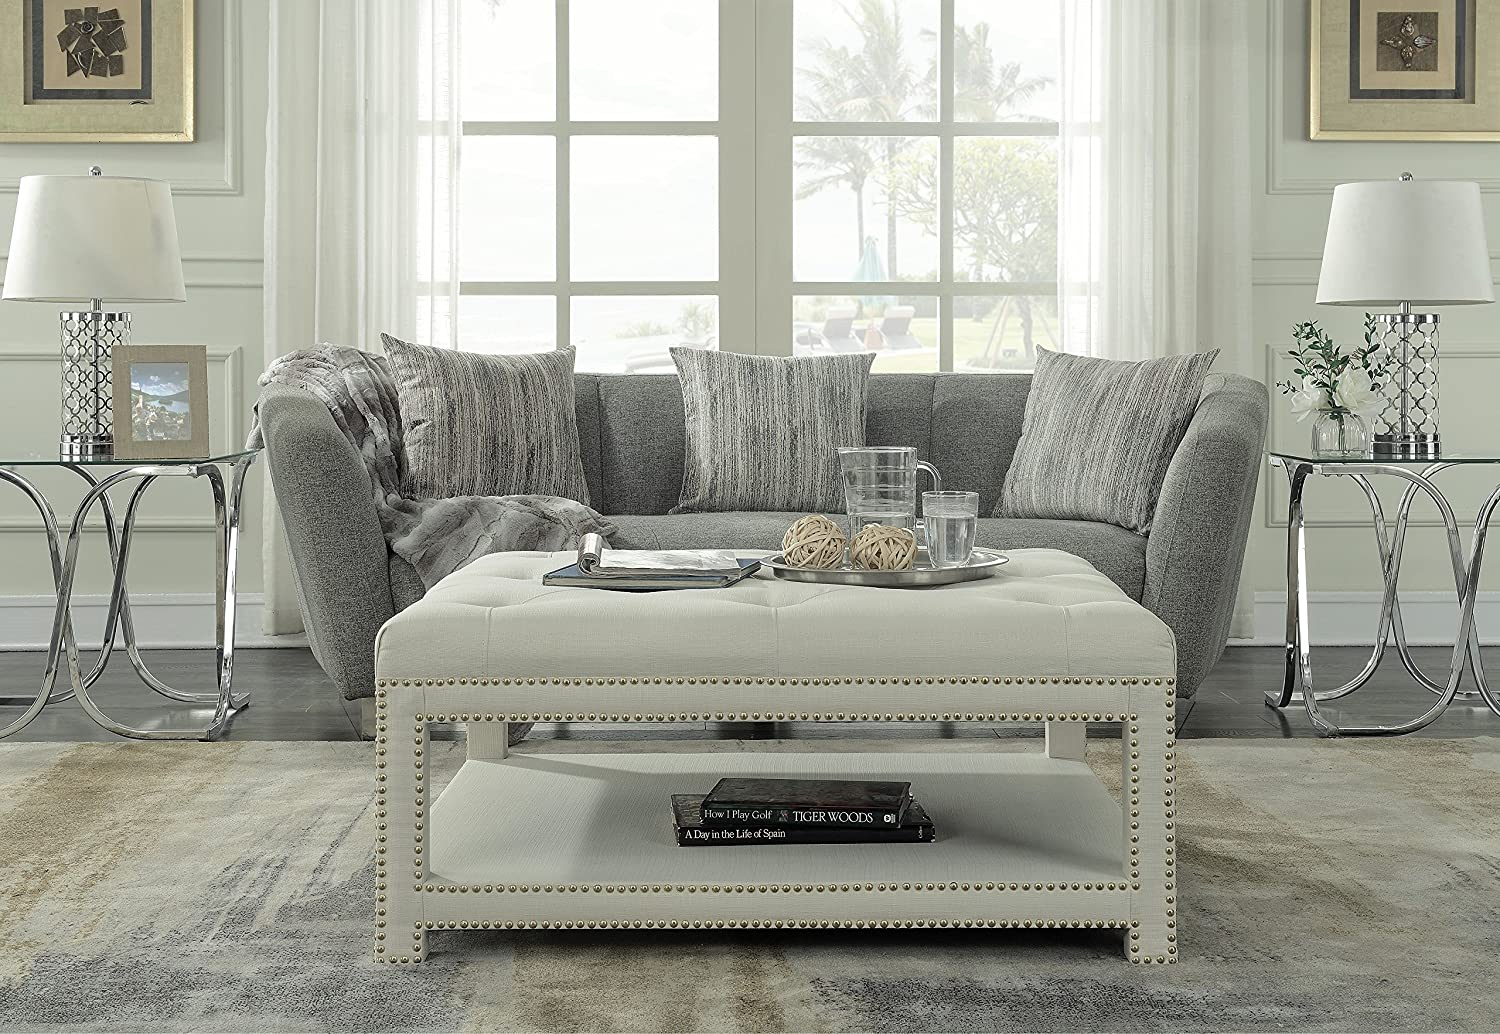 iconic home bina coffee table ottoman 2 layer polished nailhead tufted linen bench modern transitional beige